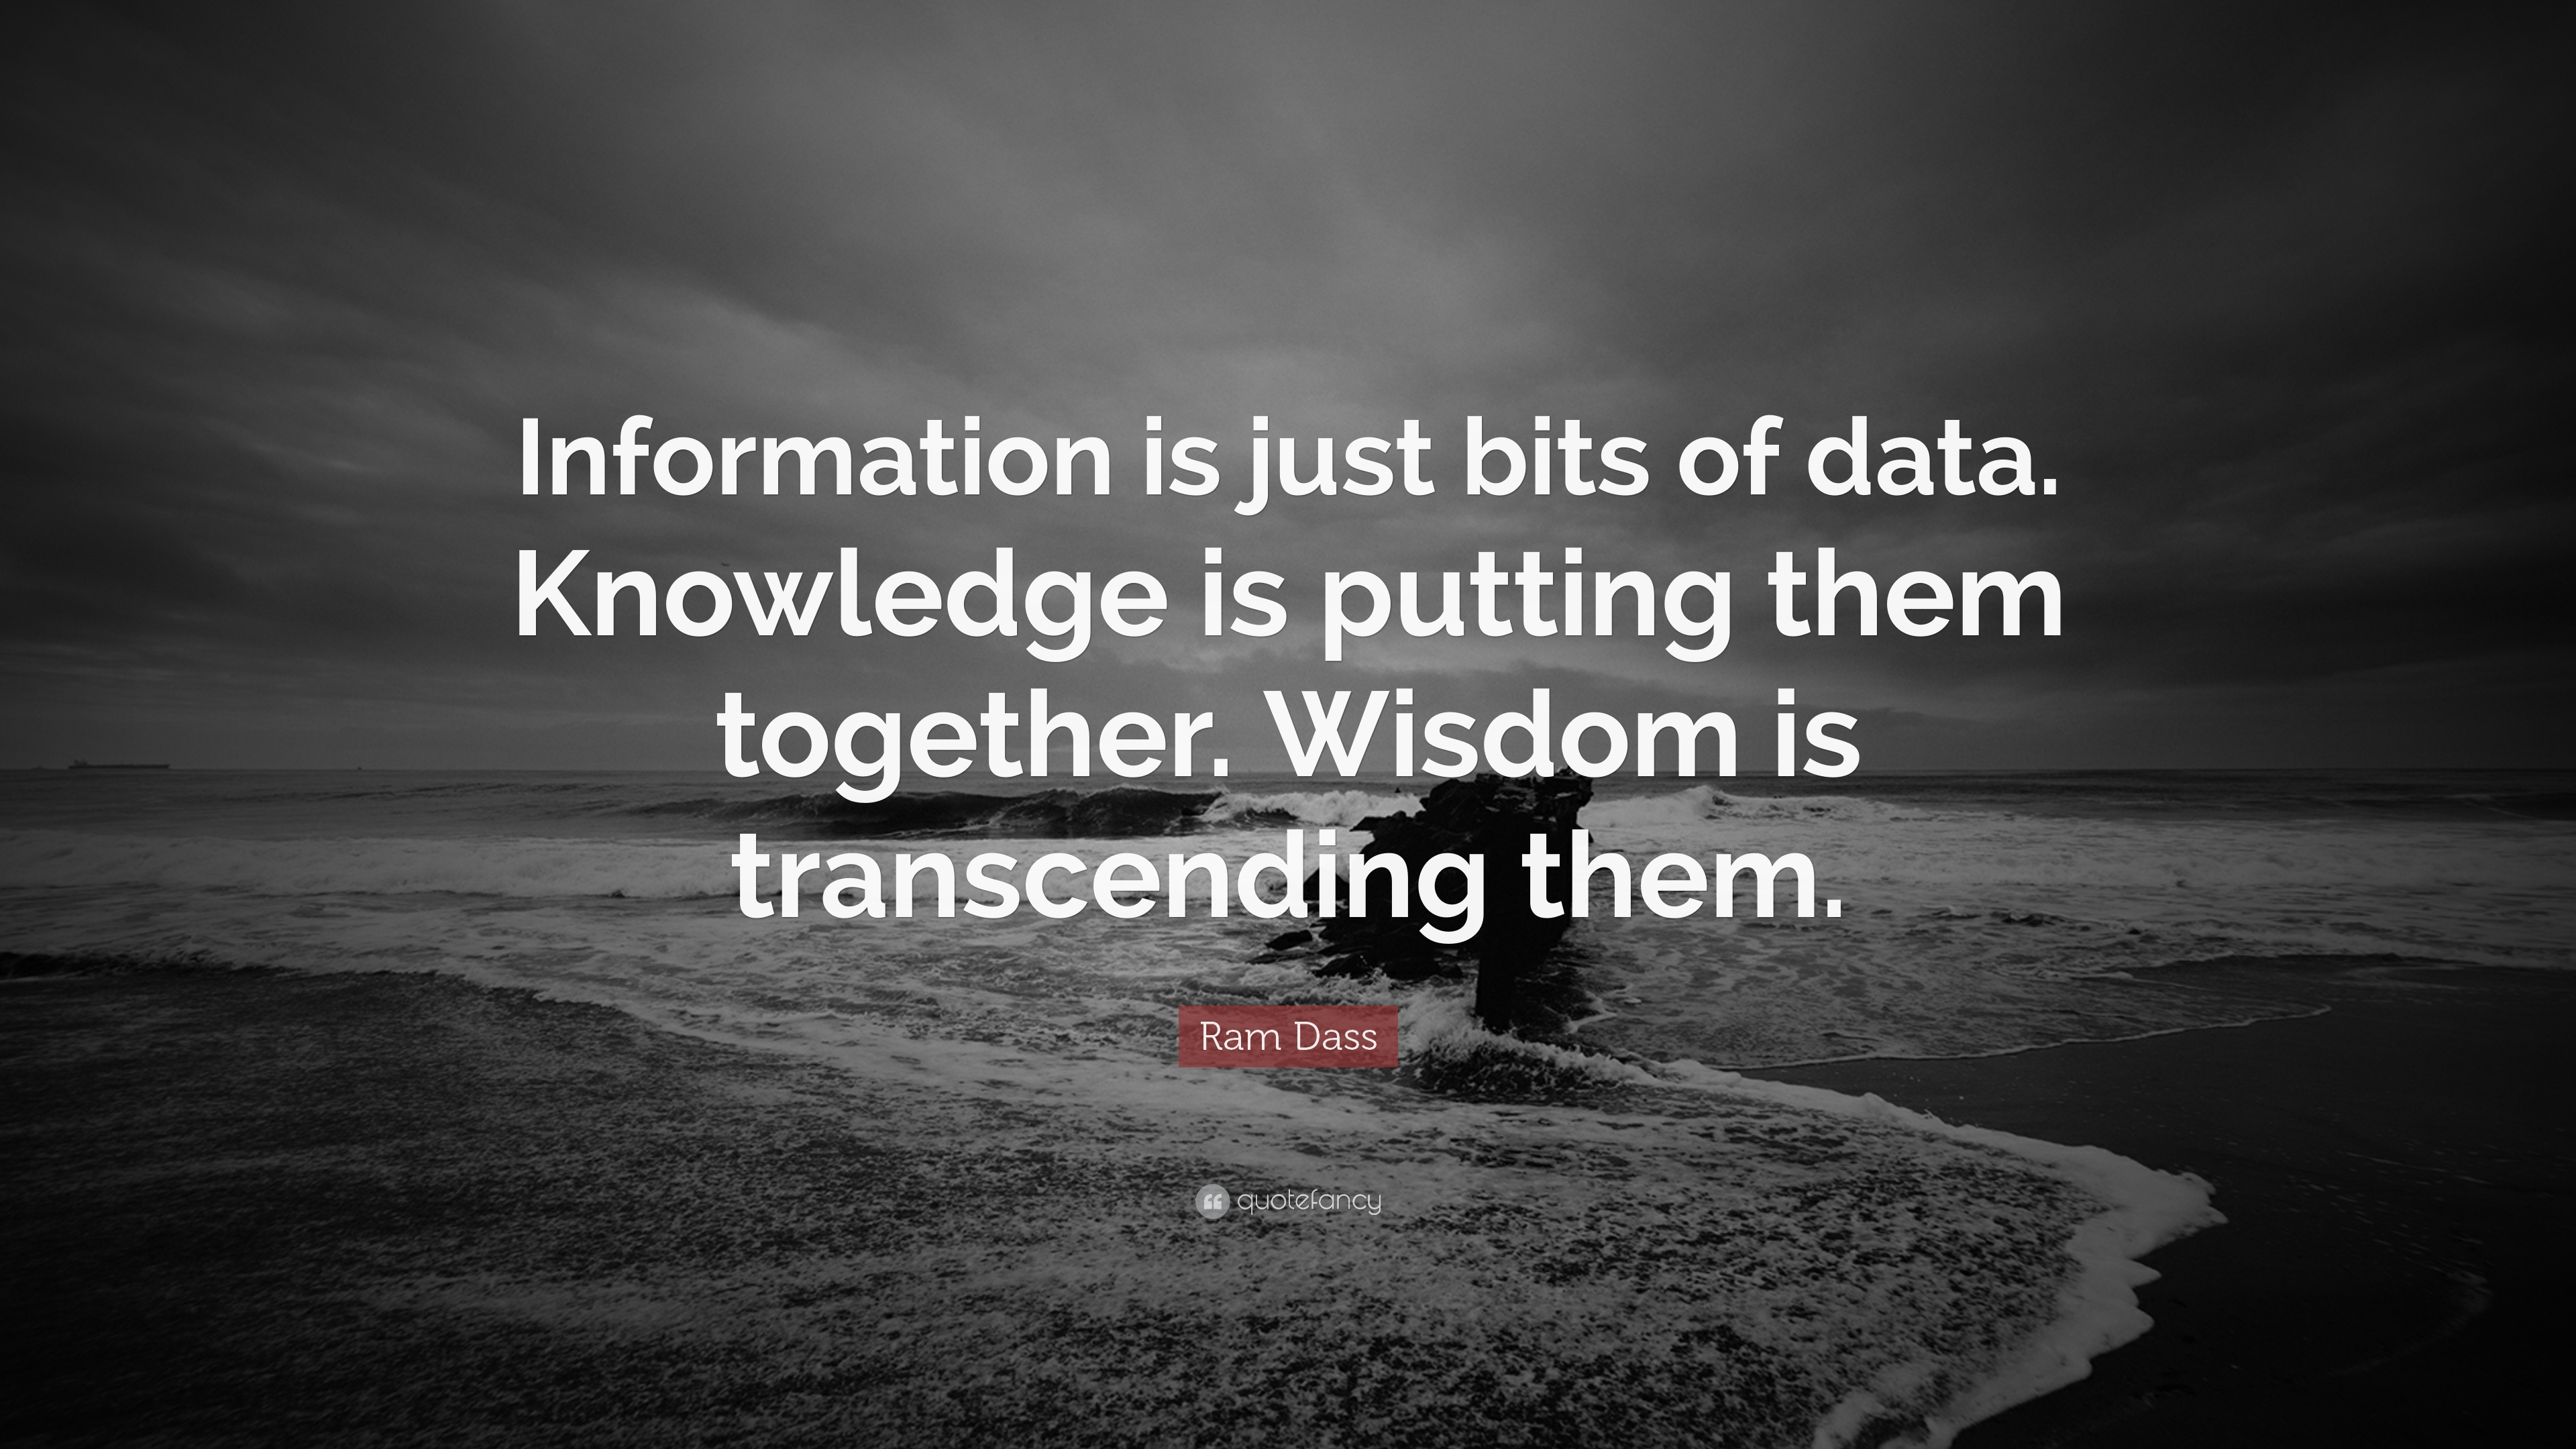 ram dass quote information is just bits of data knowledge is